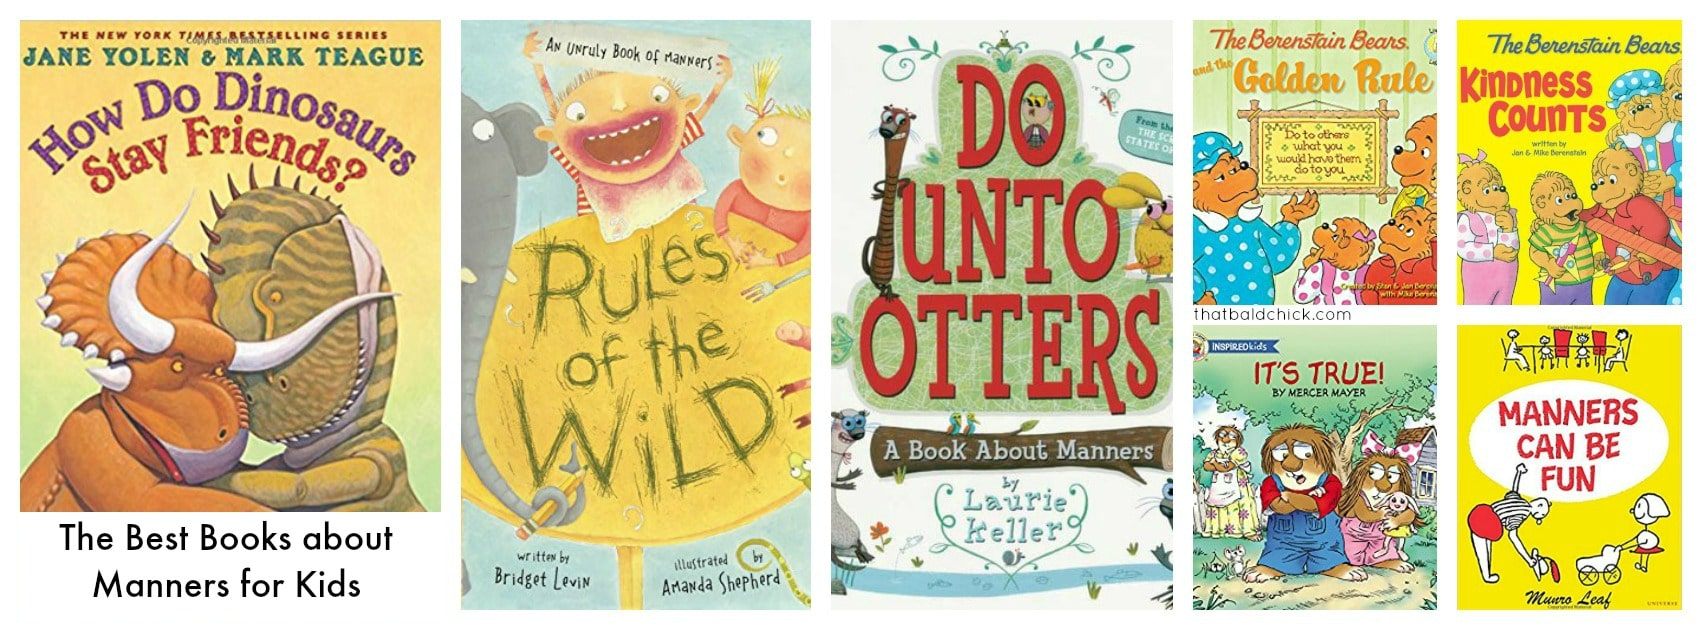 The best books about manners for kids at thatbaldchick.com